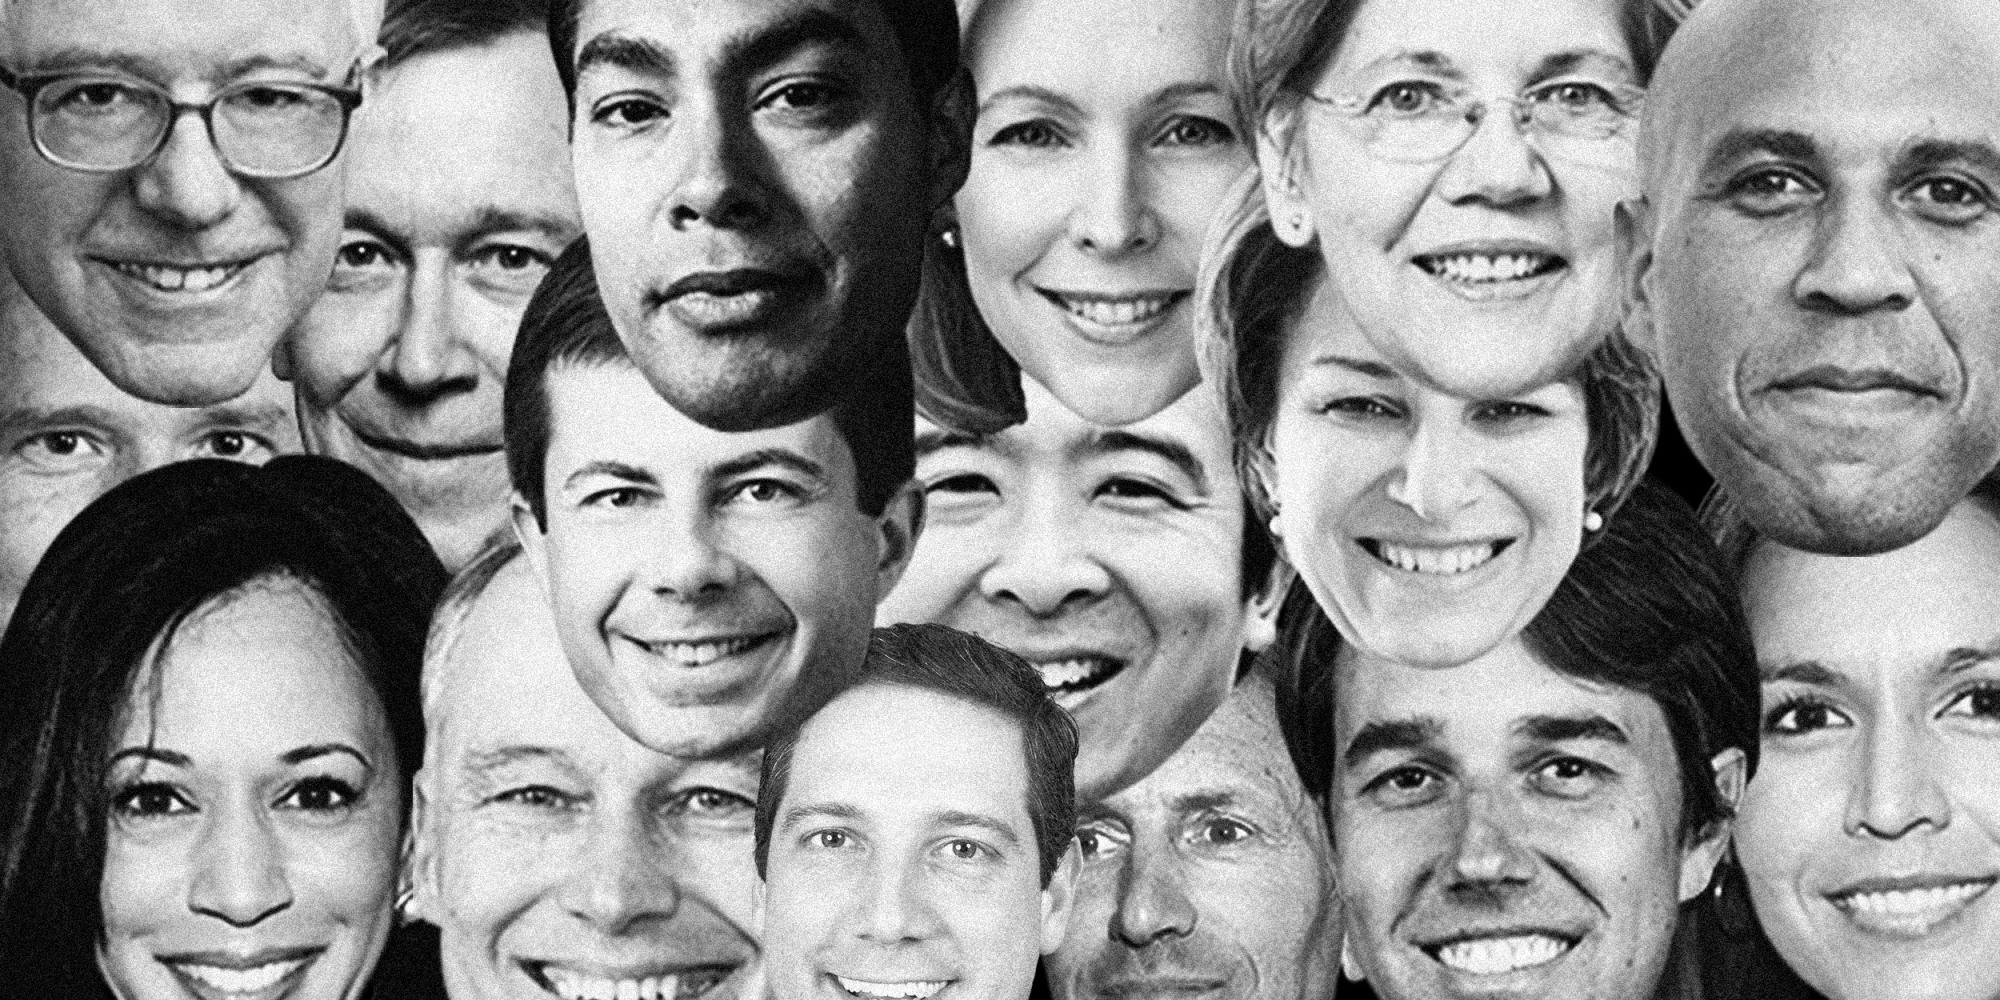 Where will it stop? The overwhelming, ever-expanding Democratic field